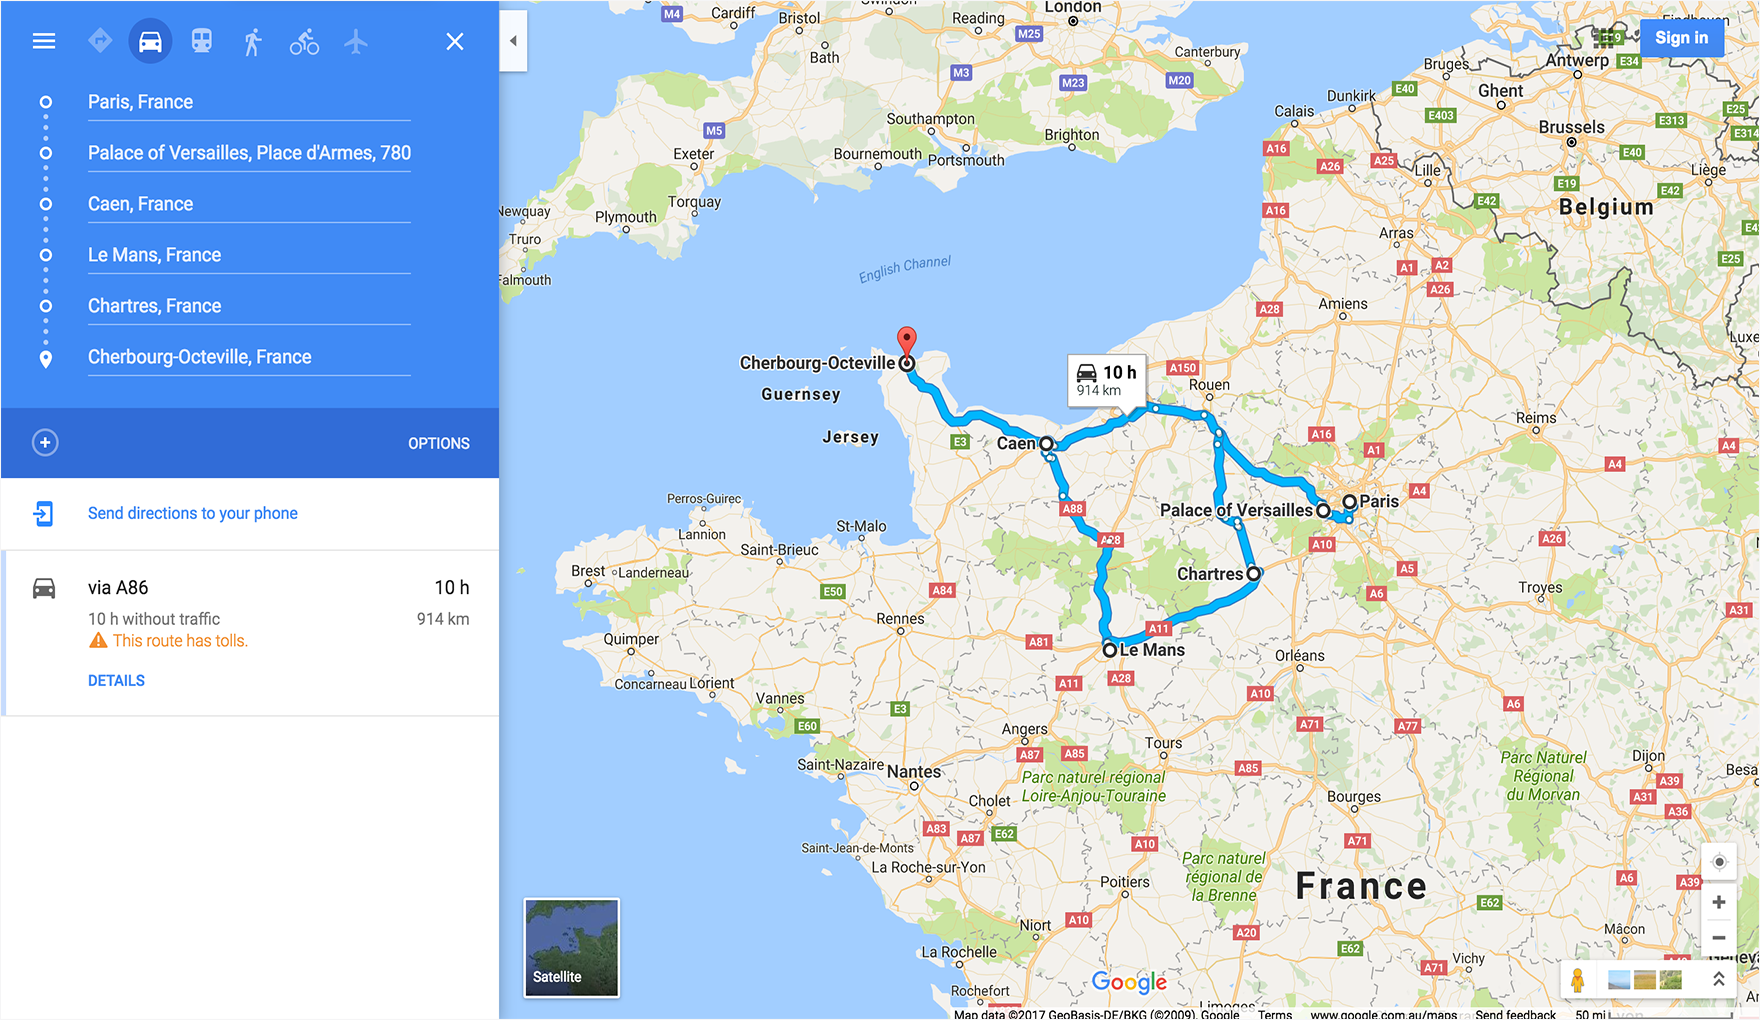 Developer guide maps urls google developers httpsgooglemapsdirapi1originparisfrancedestinationcherbourgfrancetravelmodedrivingwaypointsversaillesfrance7ccaen gumiabroncs Image collections